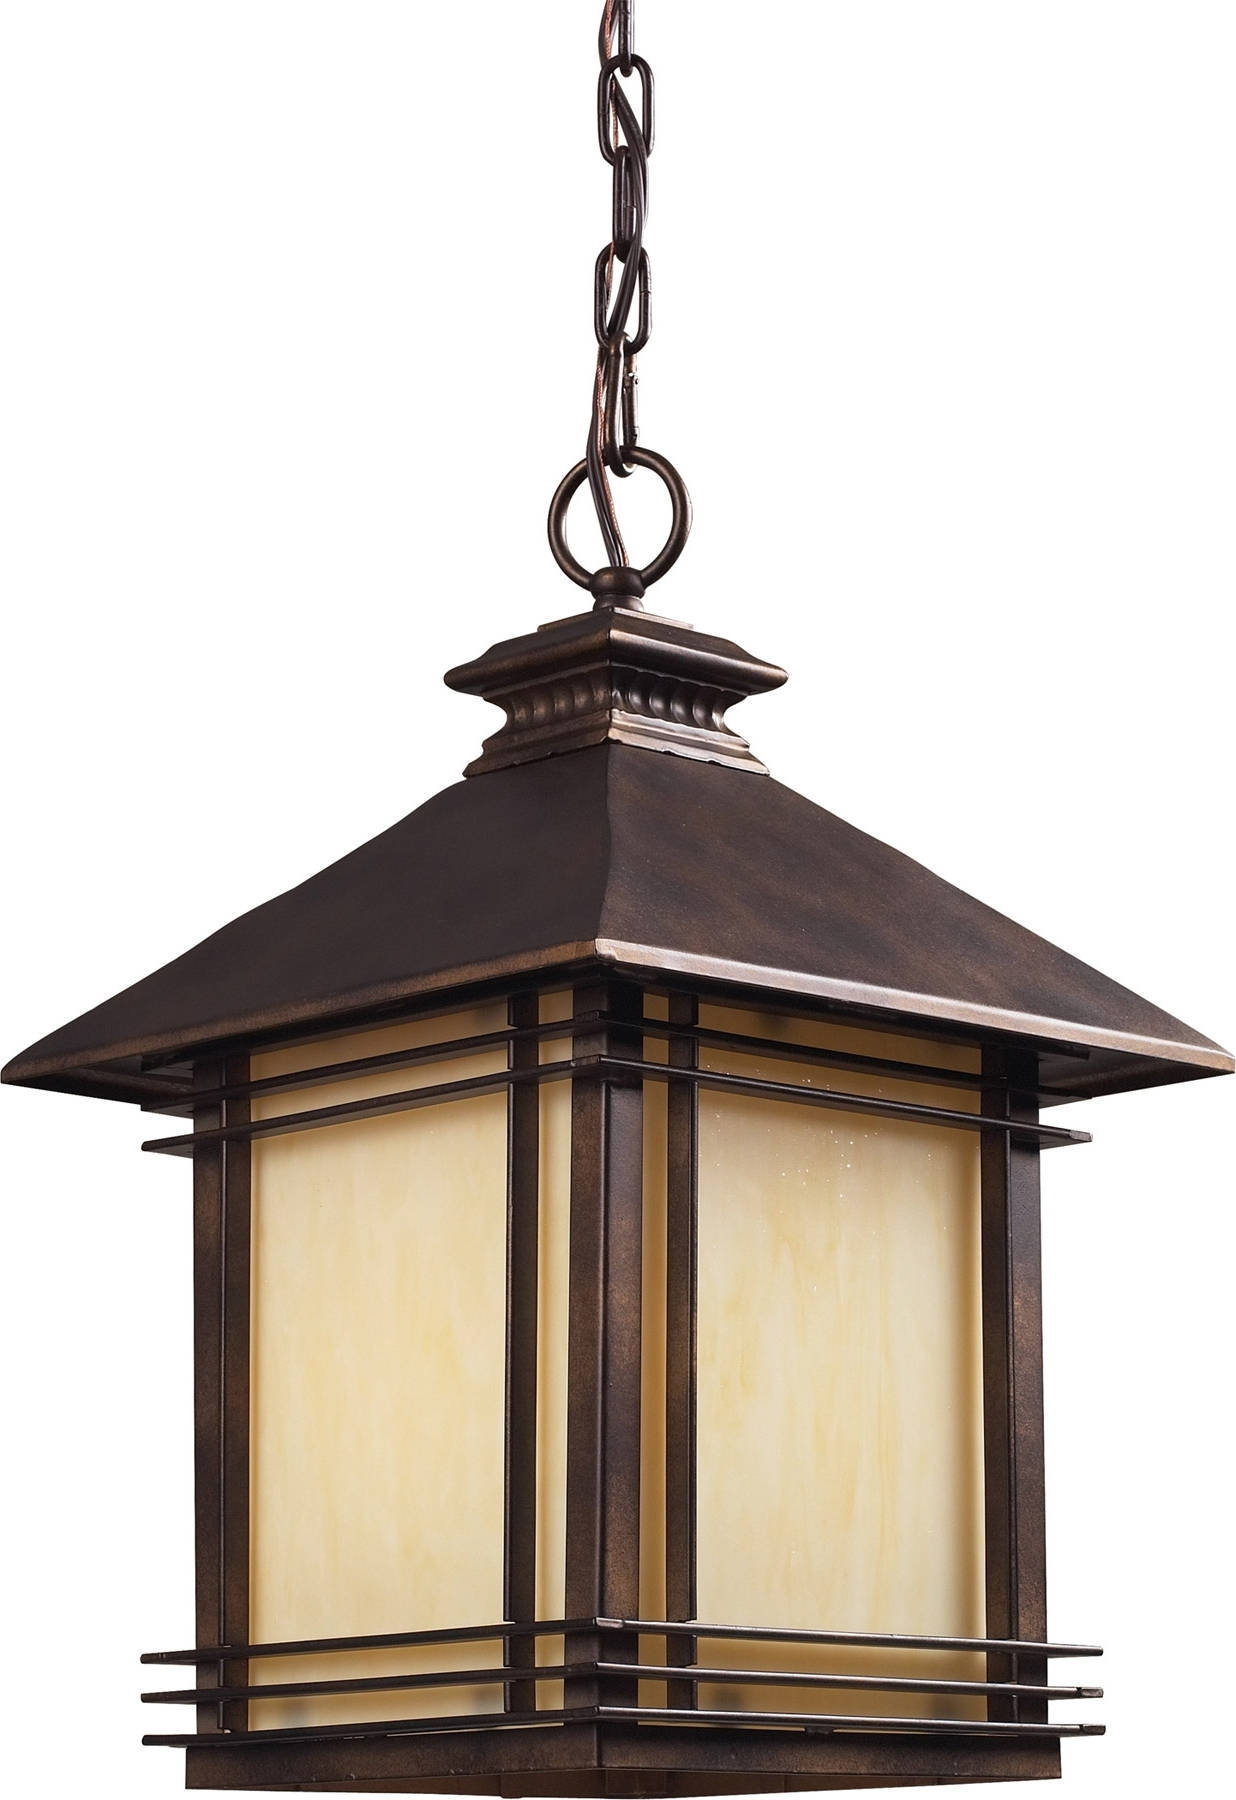 Lighting 42103/1 Blackwell Outdoor Hanging Lantern Intended For Widely Used Outdoor Hanging Porch Lights (View 9 of 20)